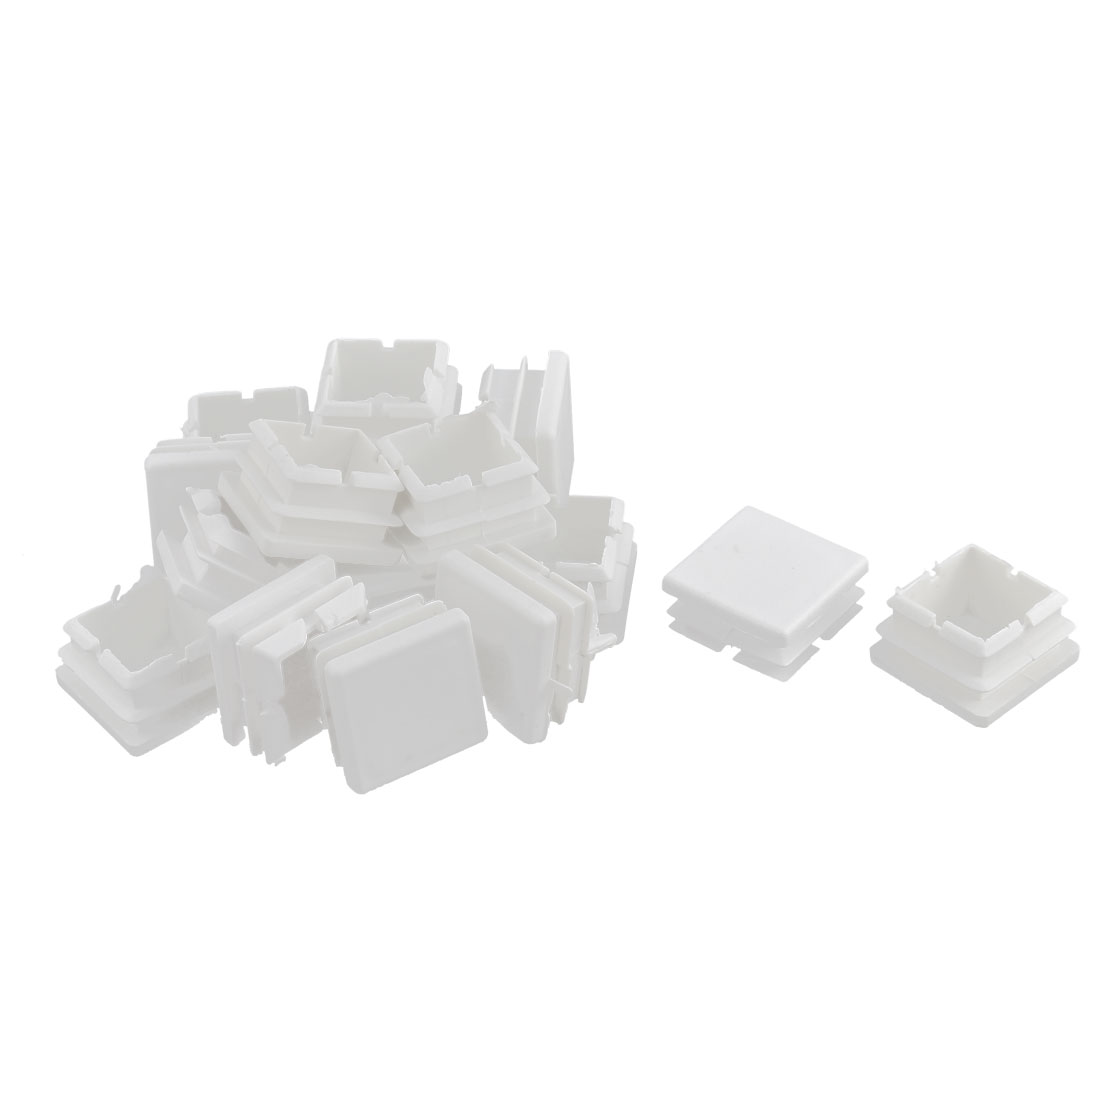 Table Feet Plastic Square Tube Pipe Inserts Caps White 25 x 25mm 16pcs